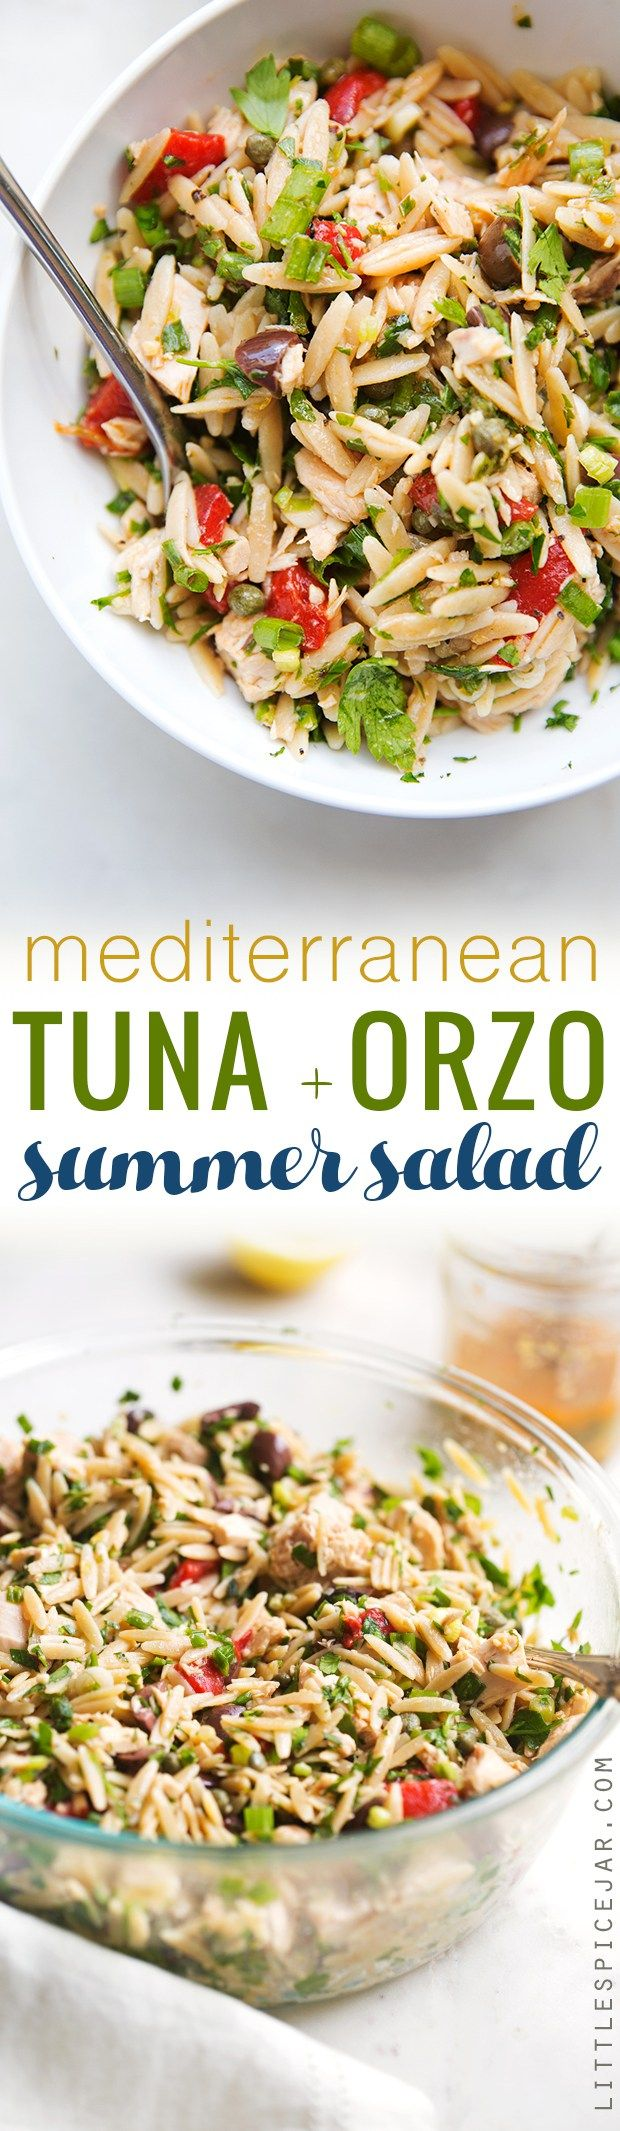 Mediterranean Tuna Orzo Summer Salad - A quick and easy summer salad using mostly pantry ingredients. This salad is hearty and healthy…